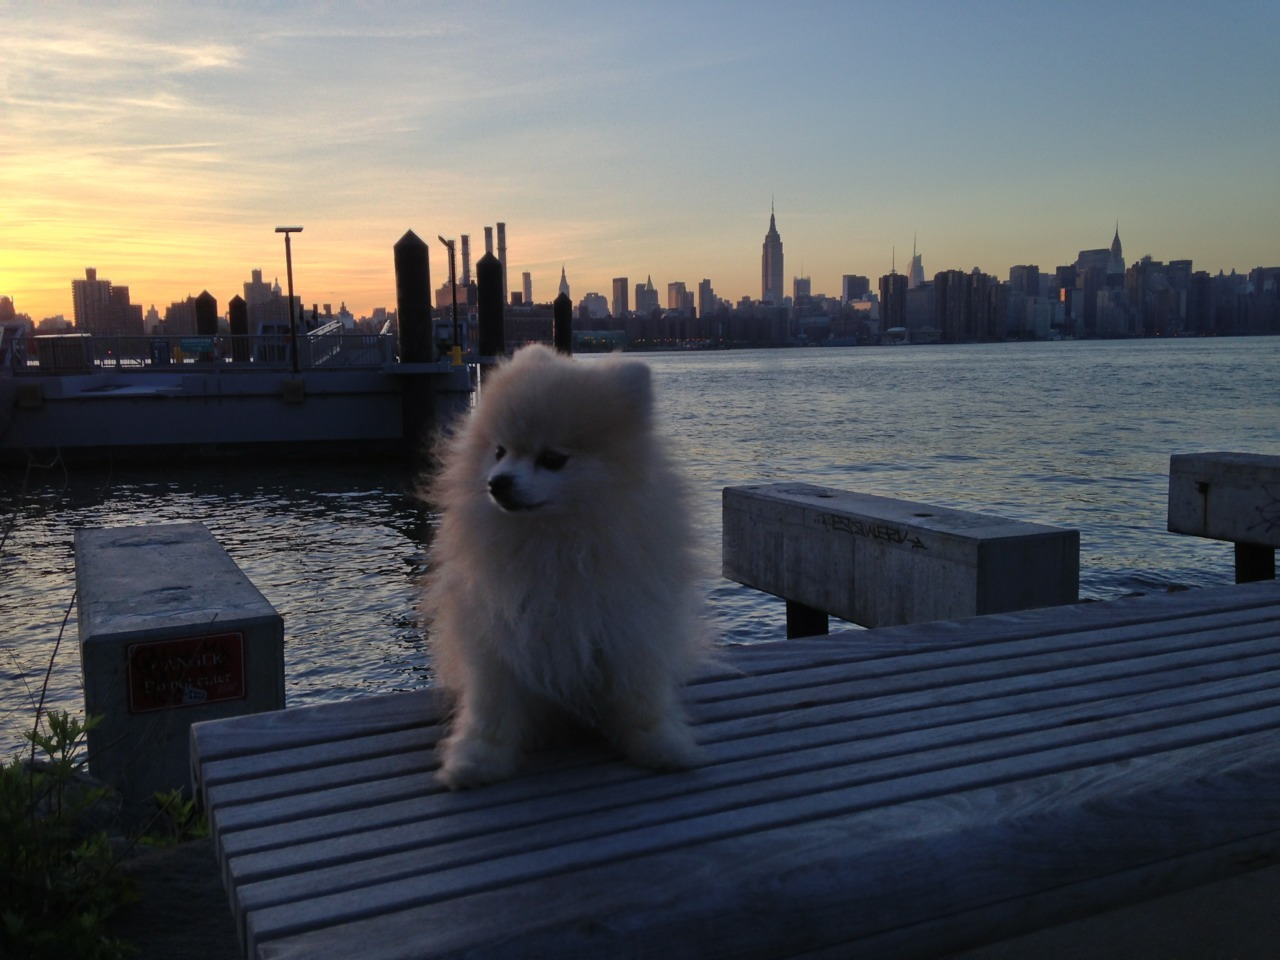 New York I love you, but I'm a pom.